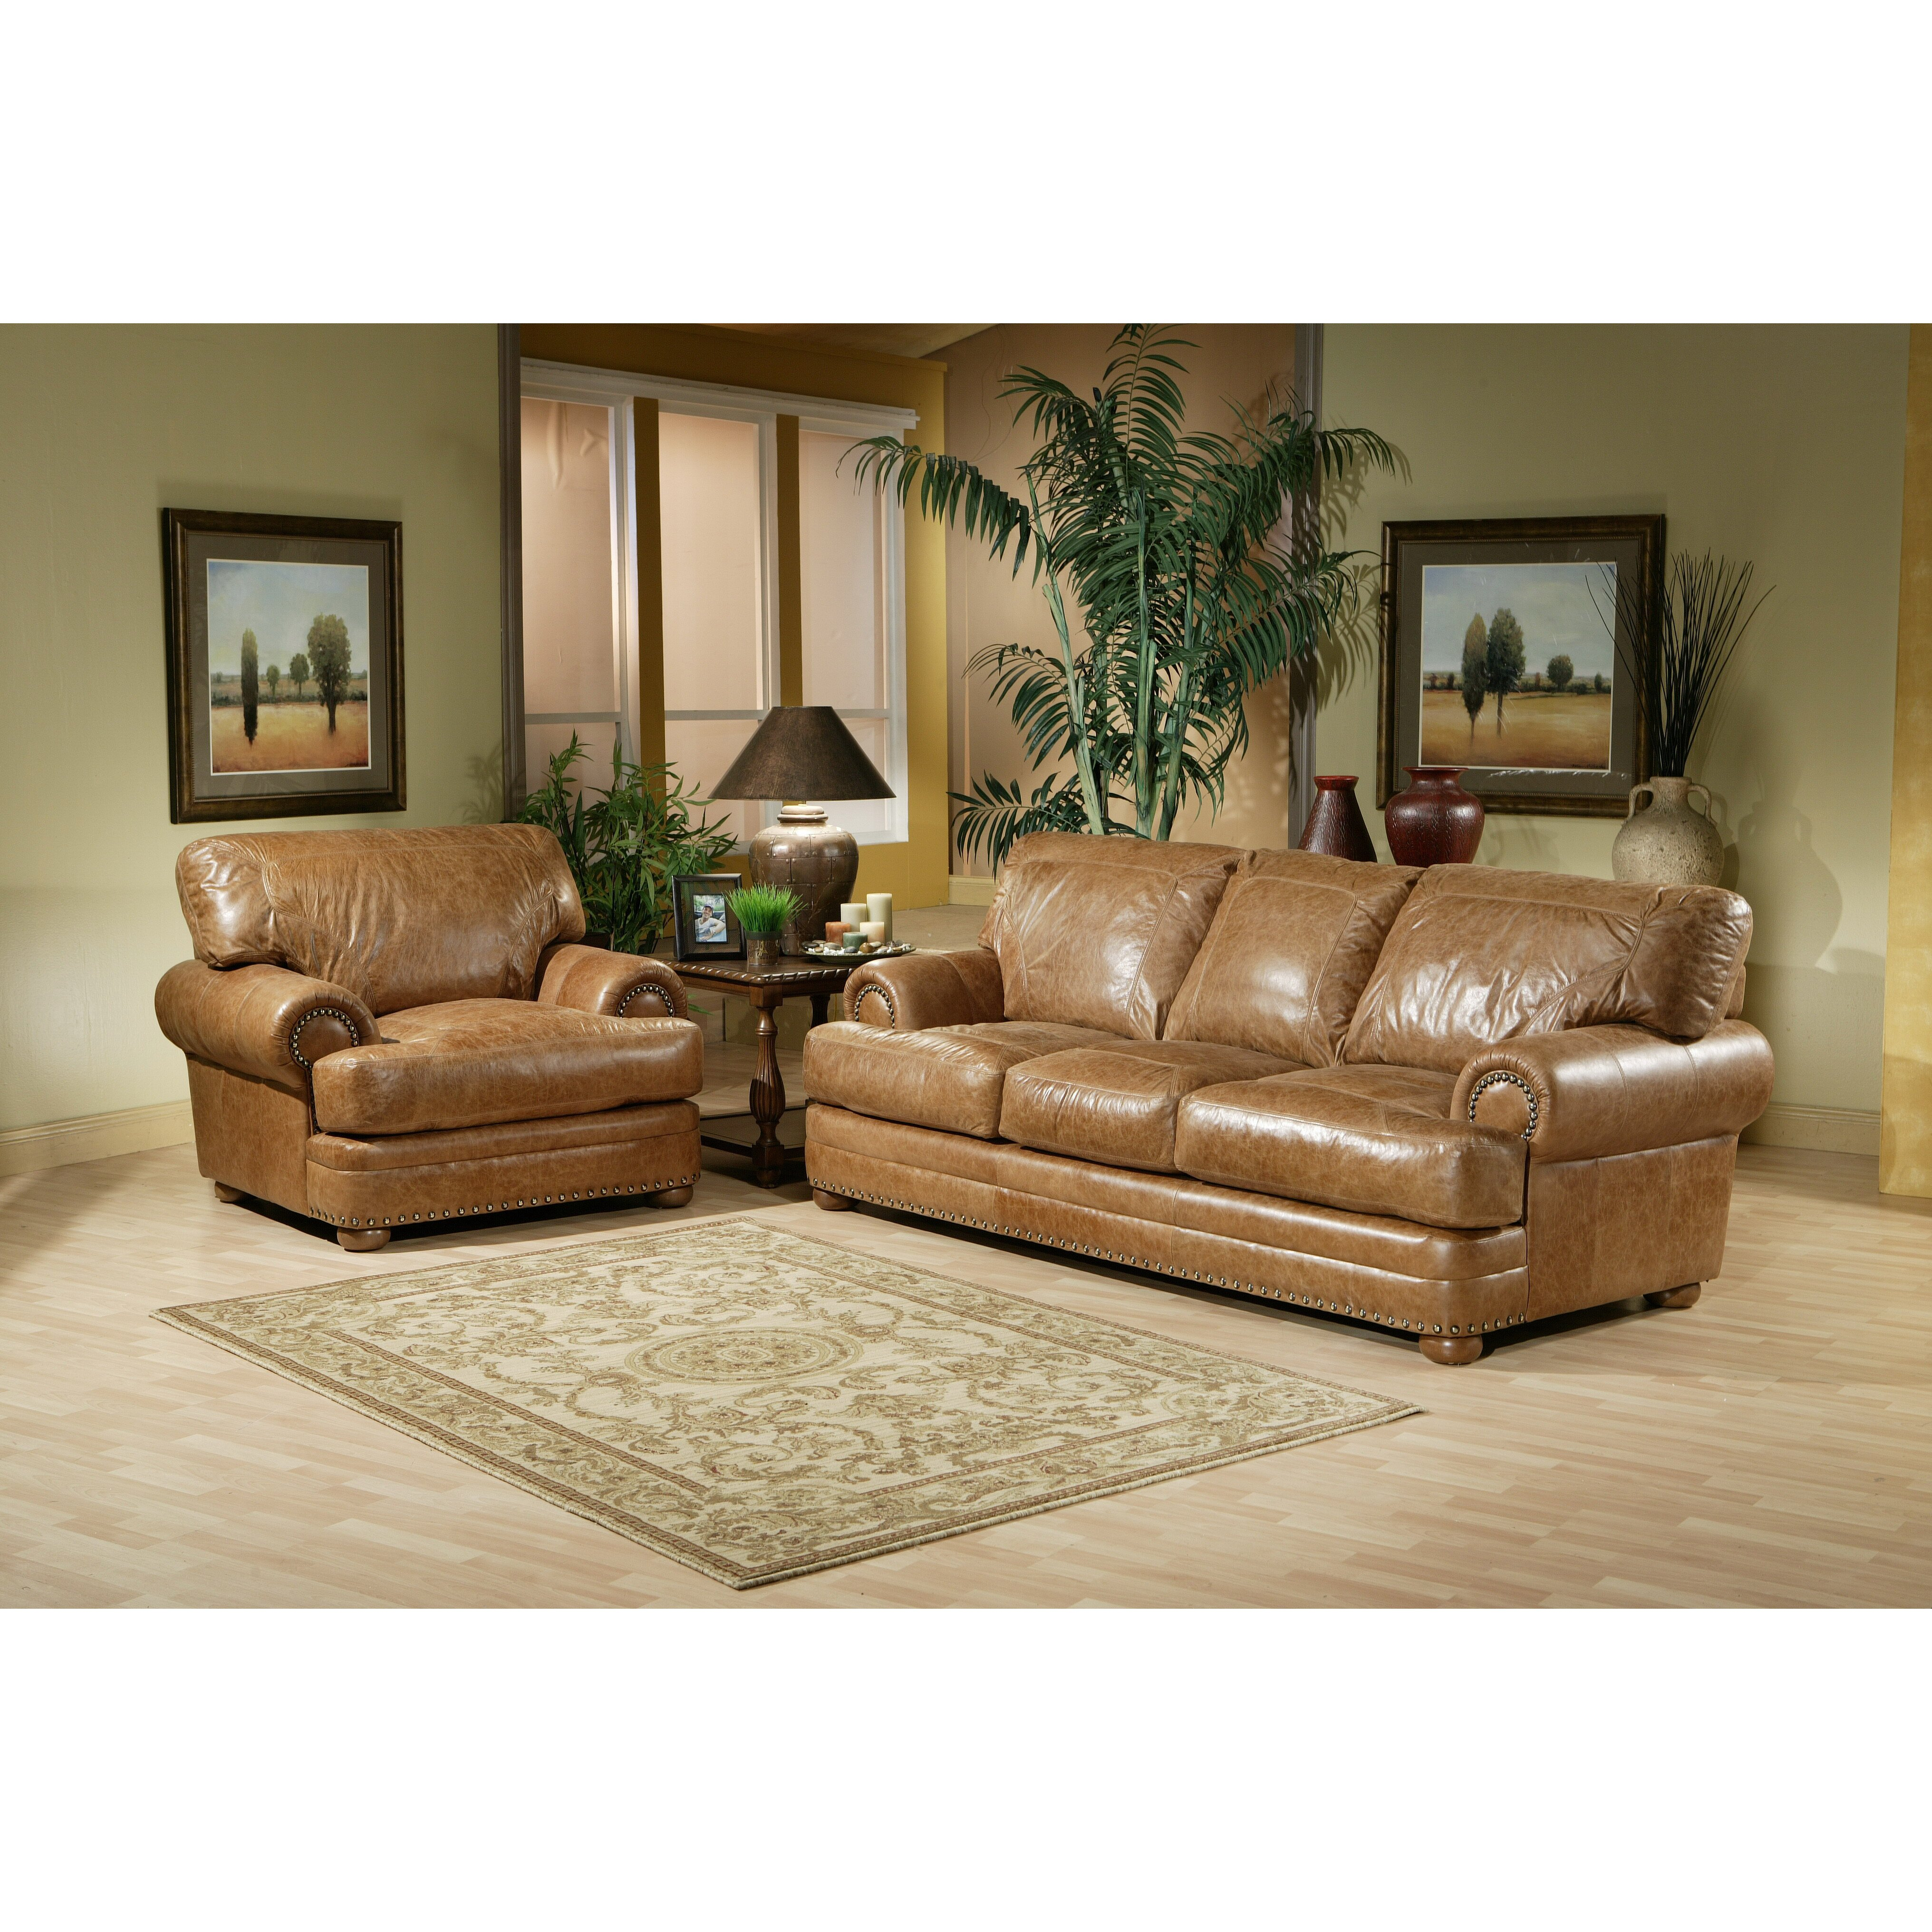 Furniture living room furniture living room sets omnia leather sku